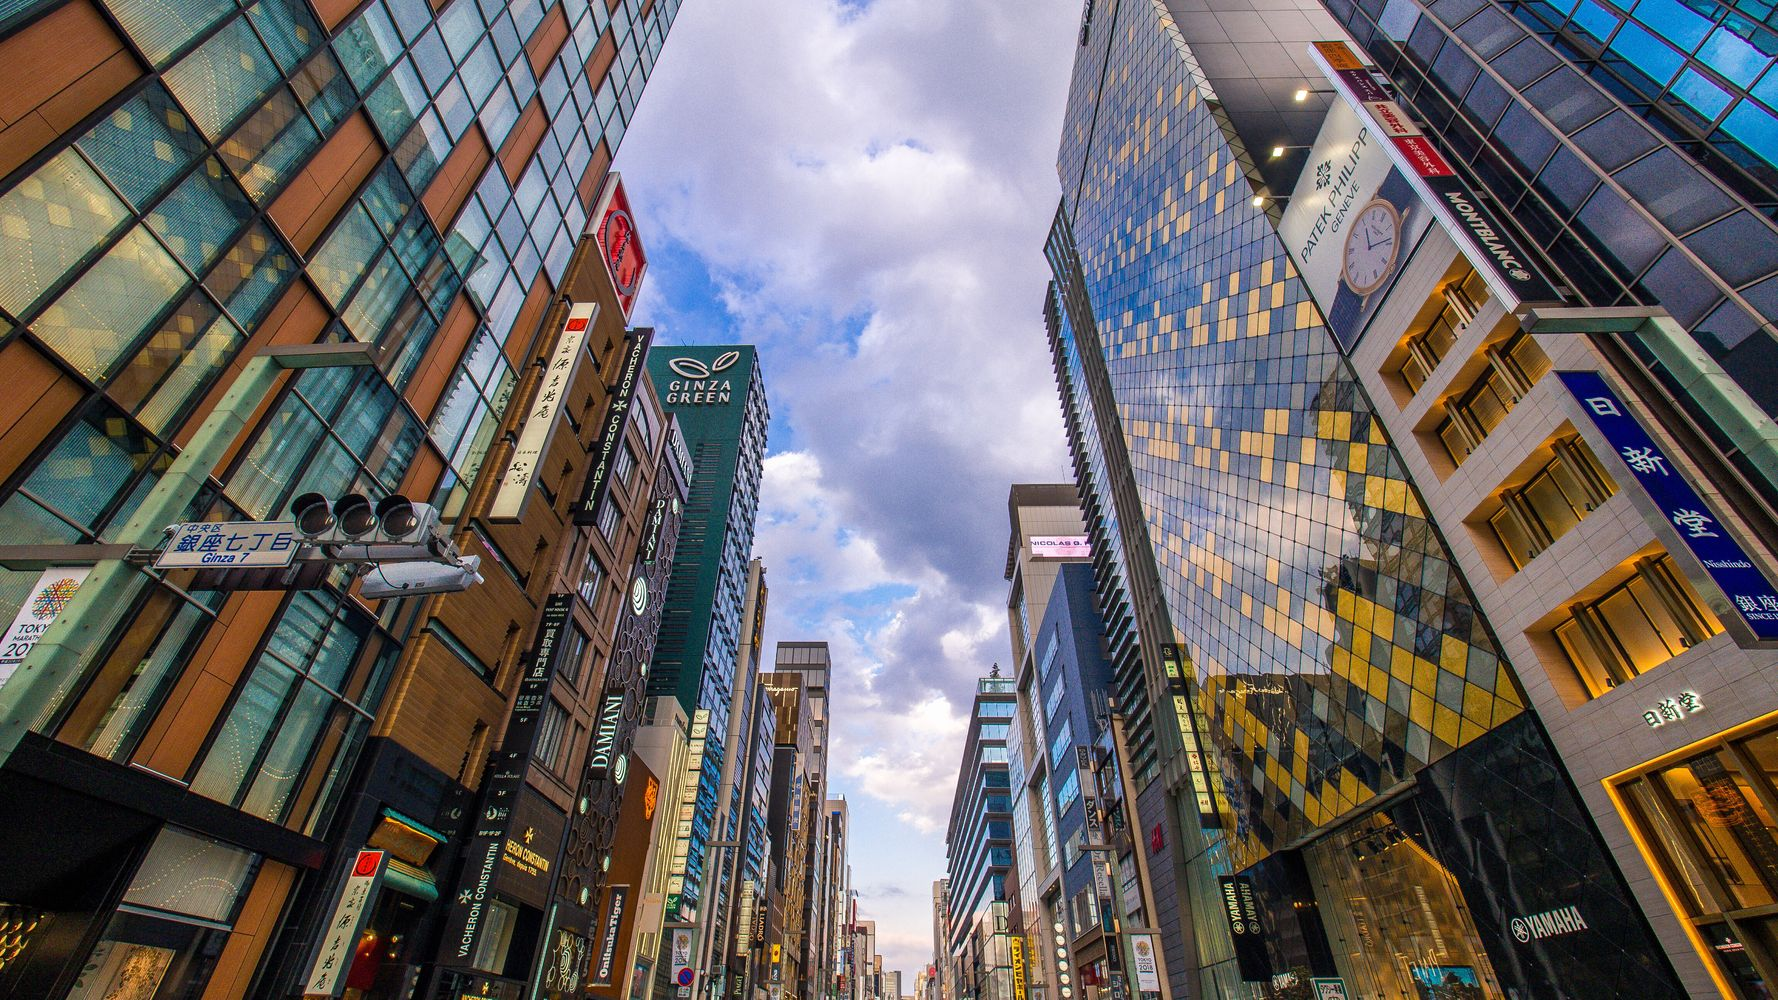 10 Of The Best Things To See And Do In Tokyo, Japan